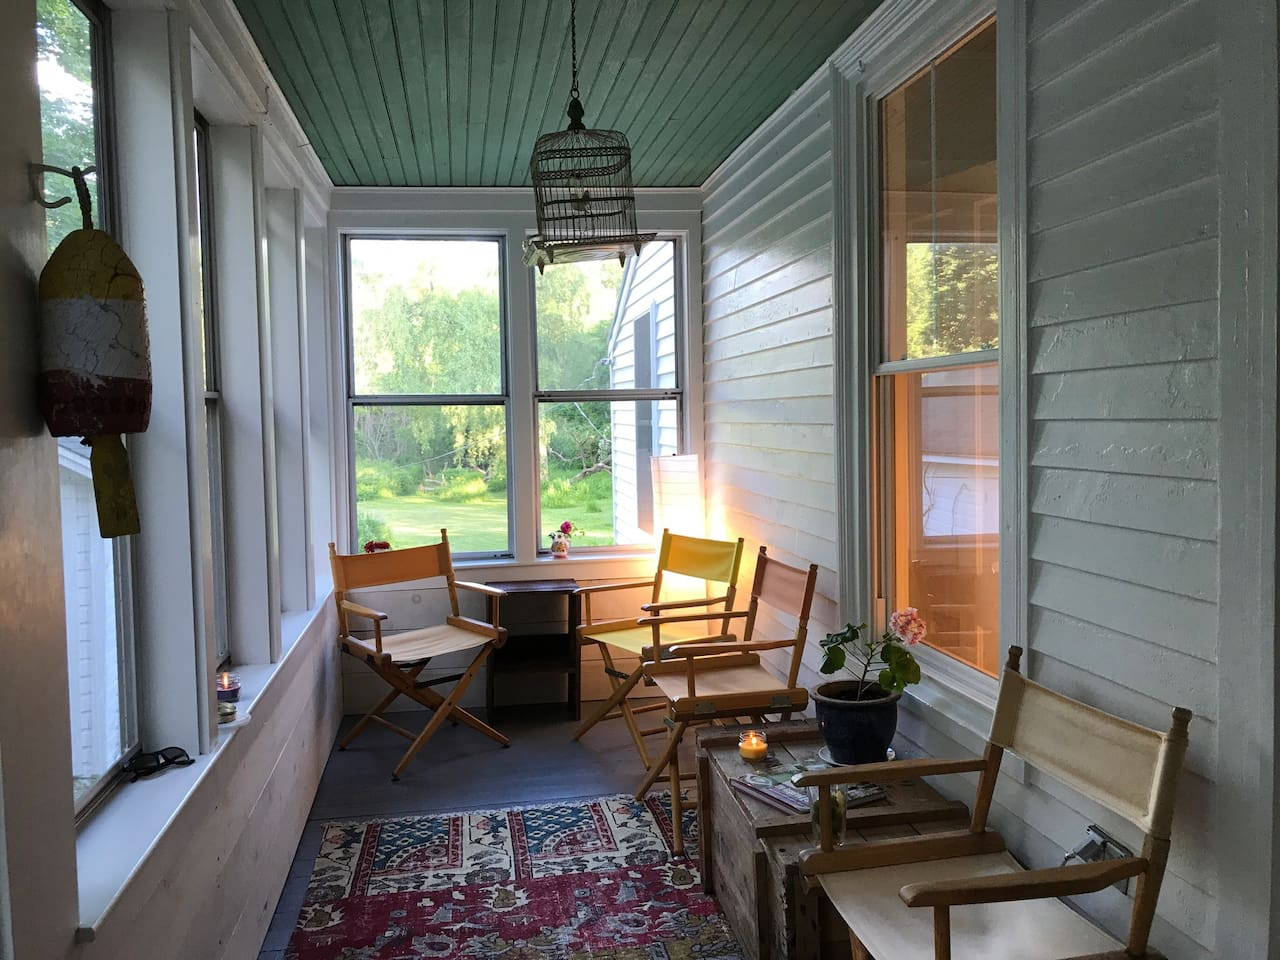 Screened porch off the kitchen looks out to large yard with wildflowers and meadow and is a lovely Spot to relax.